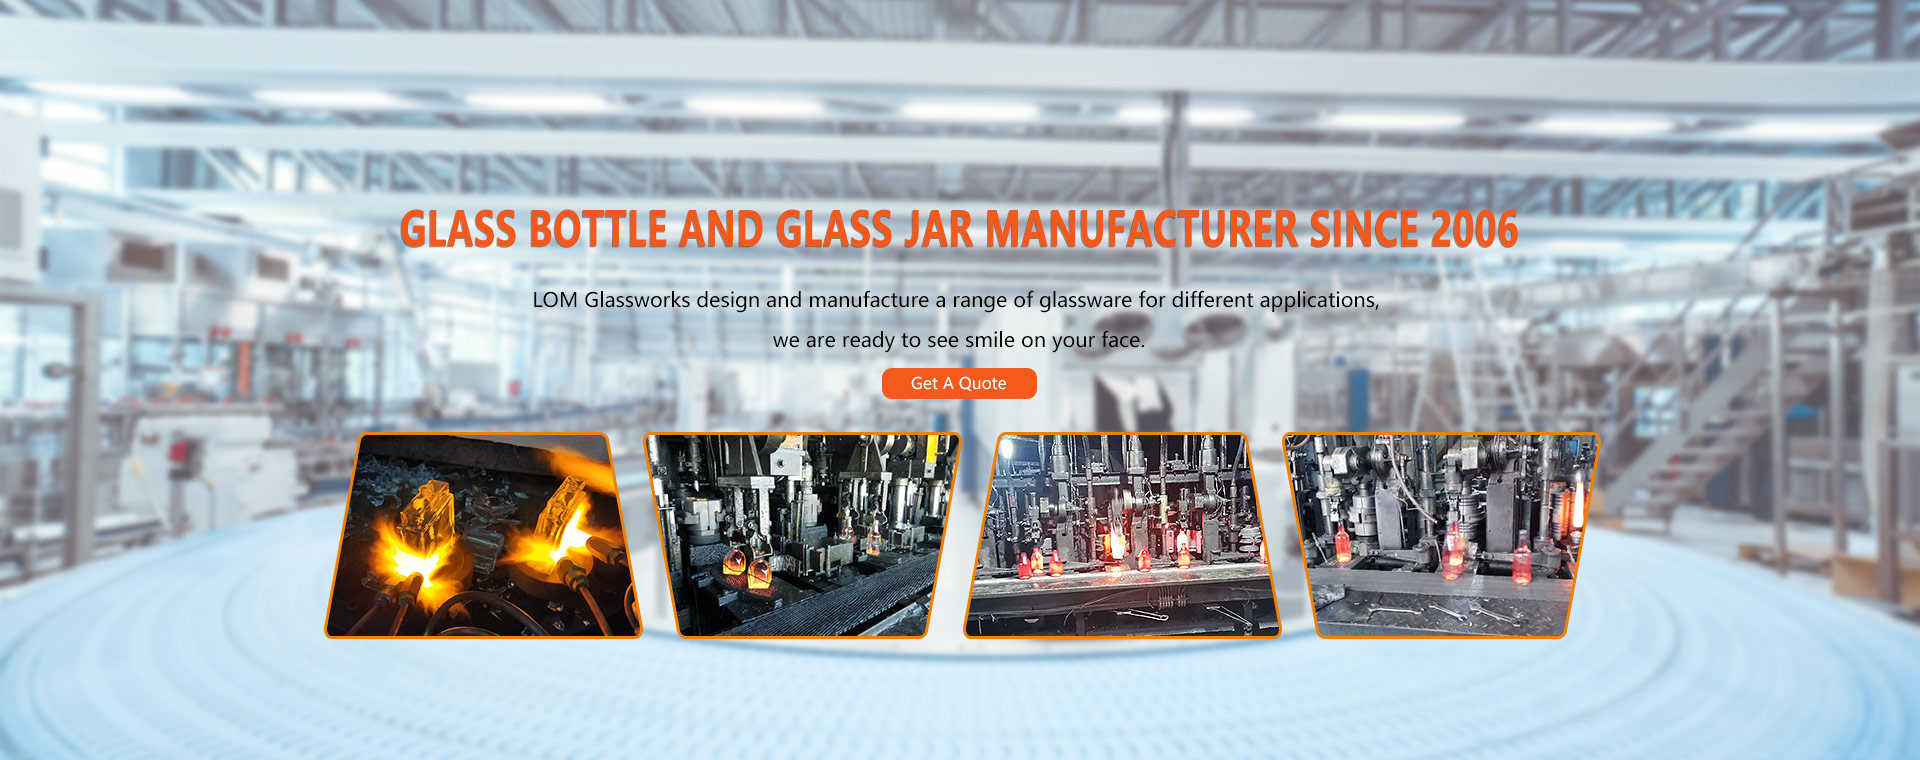 Glass Bottle and Glass Jar Manufacturer Since 2006